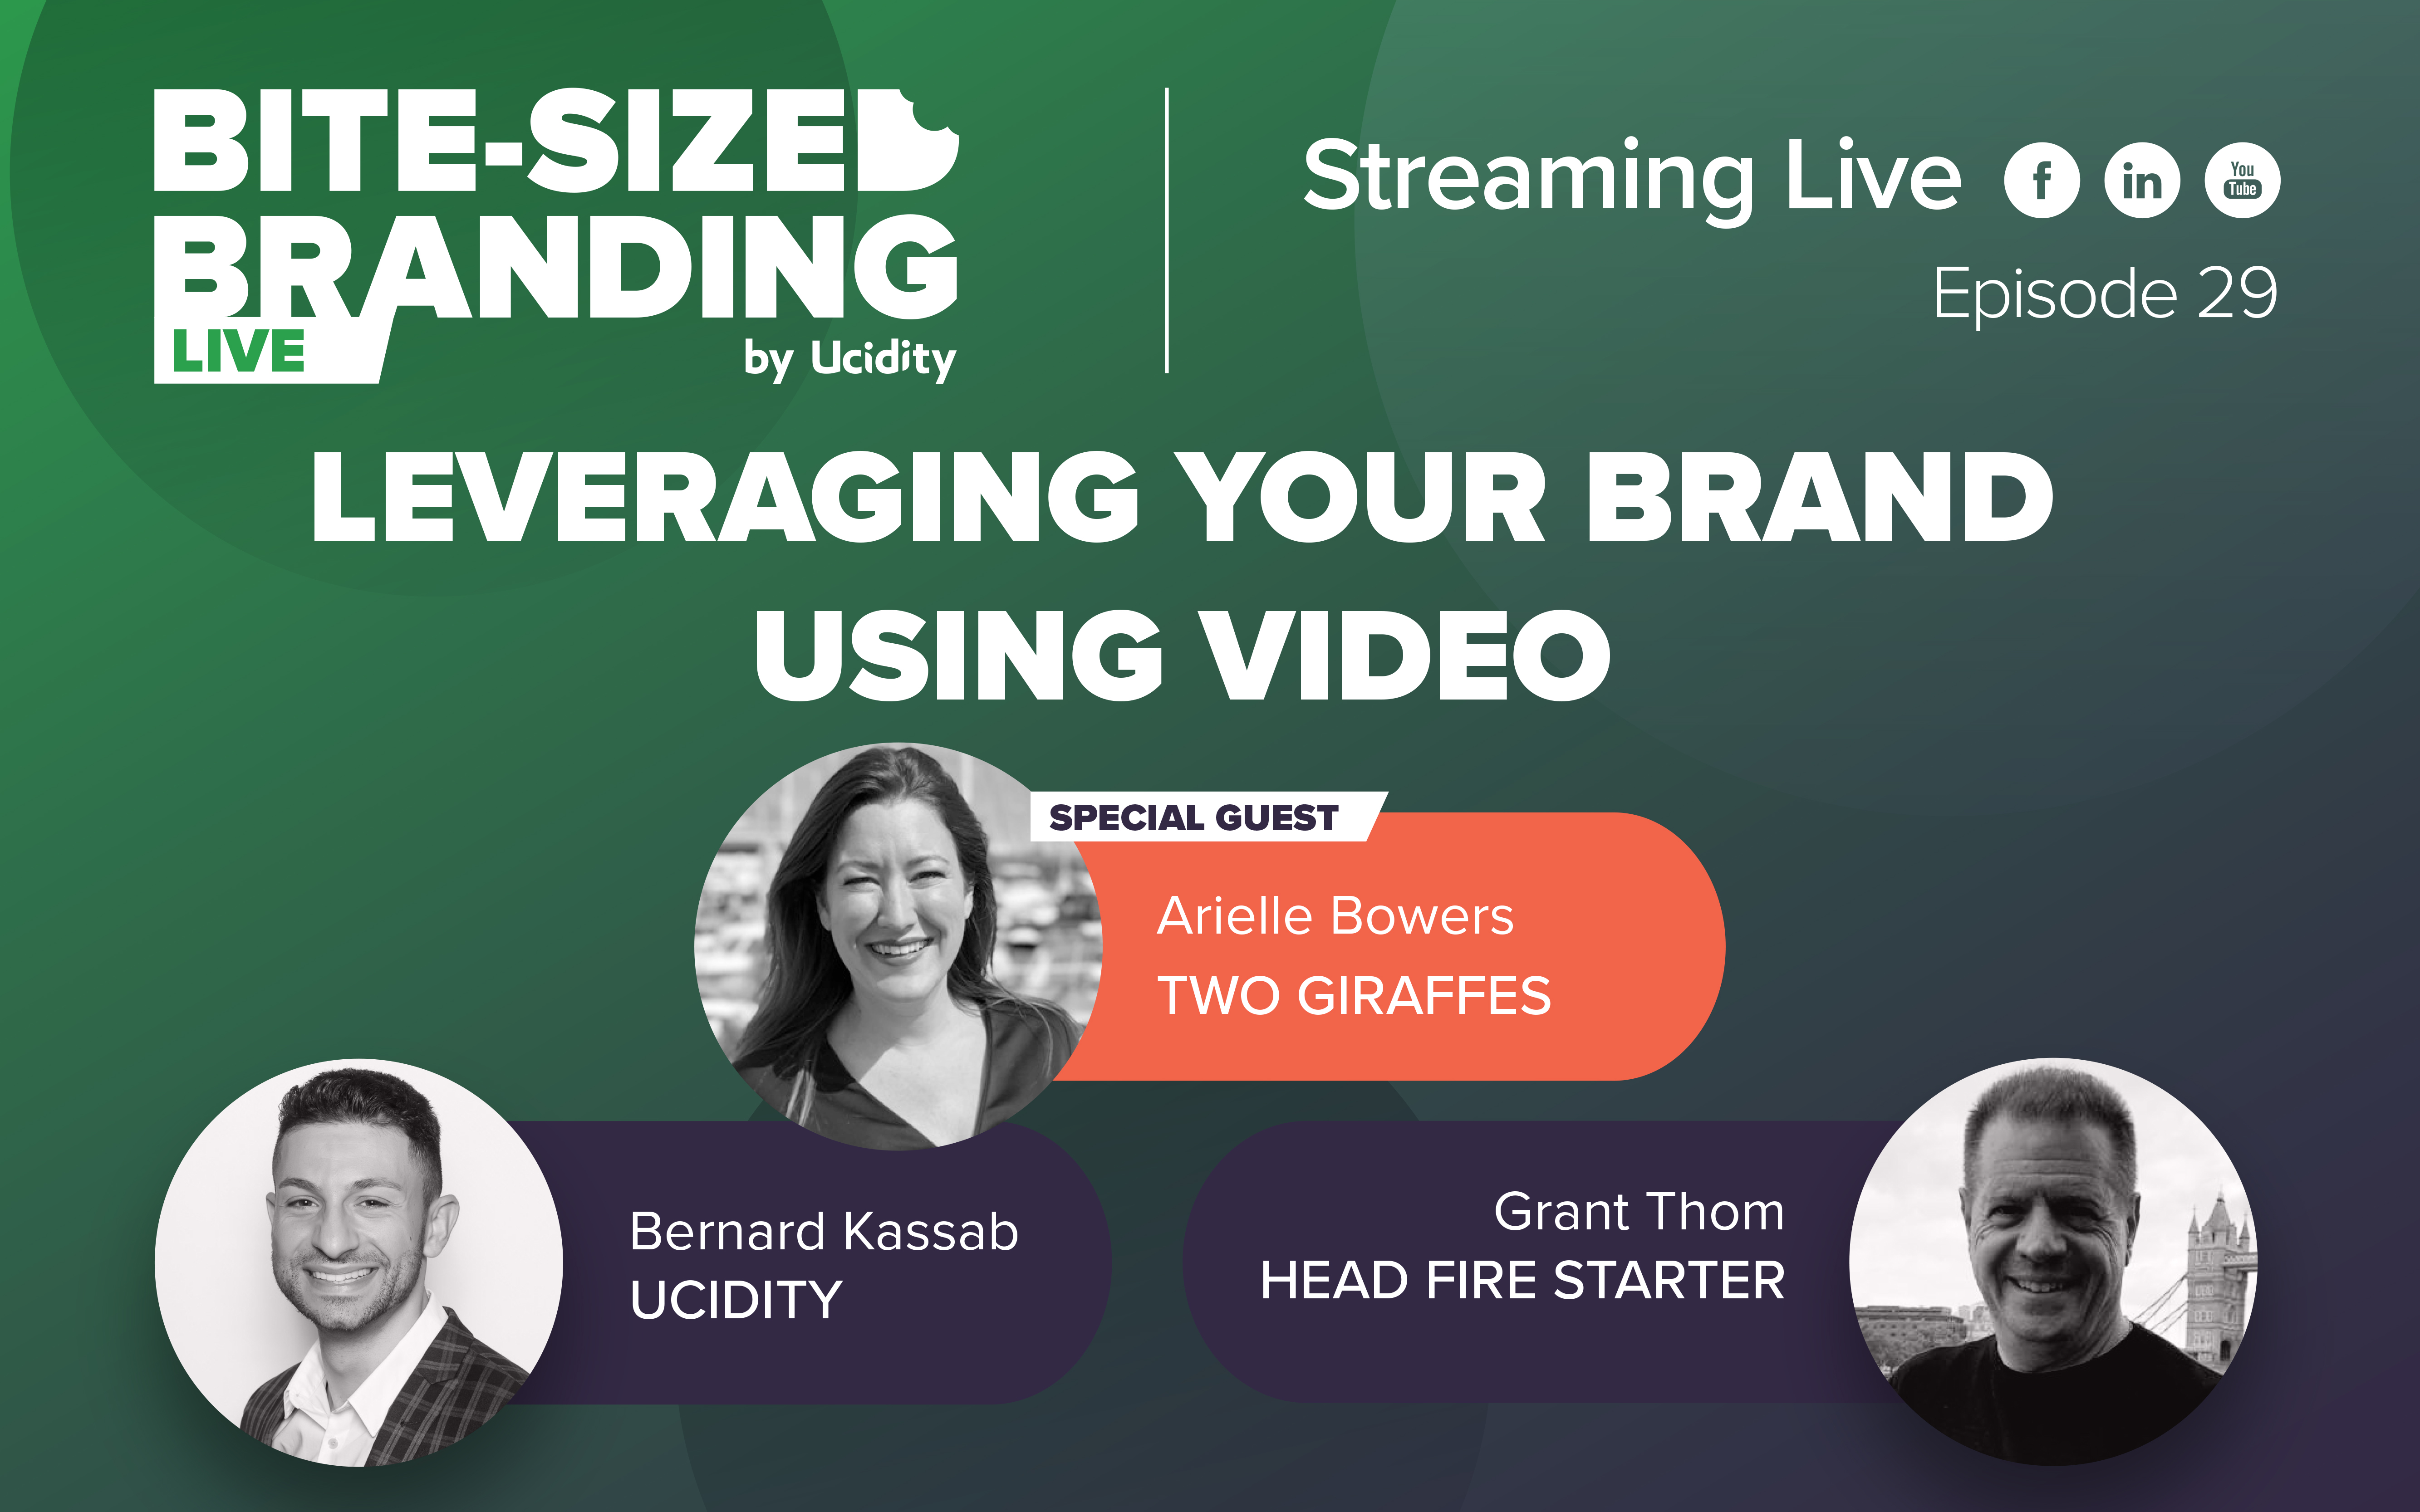 Bite-sized-Branding-Episode-29-Leverage-Your-Brand-With-Video